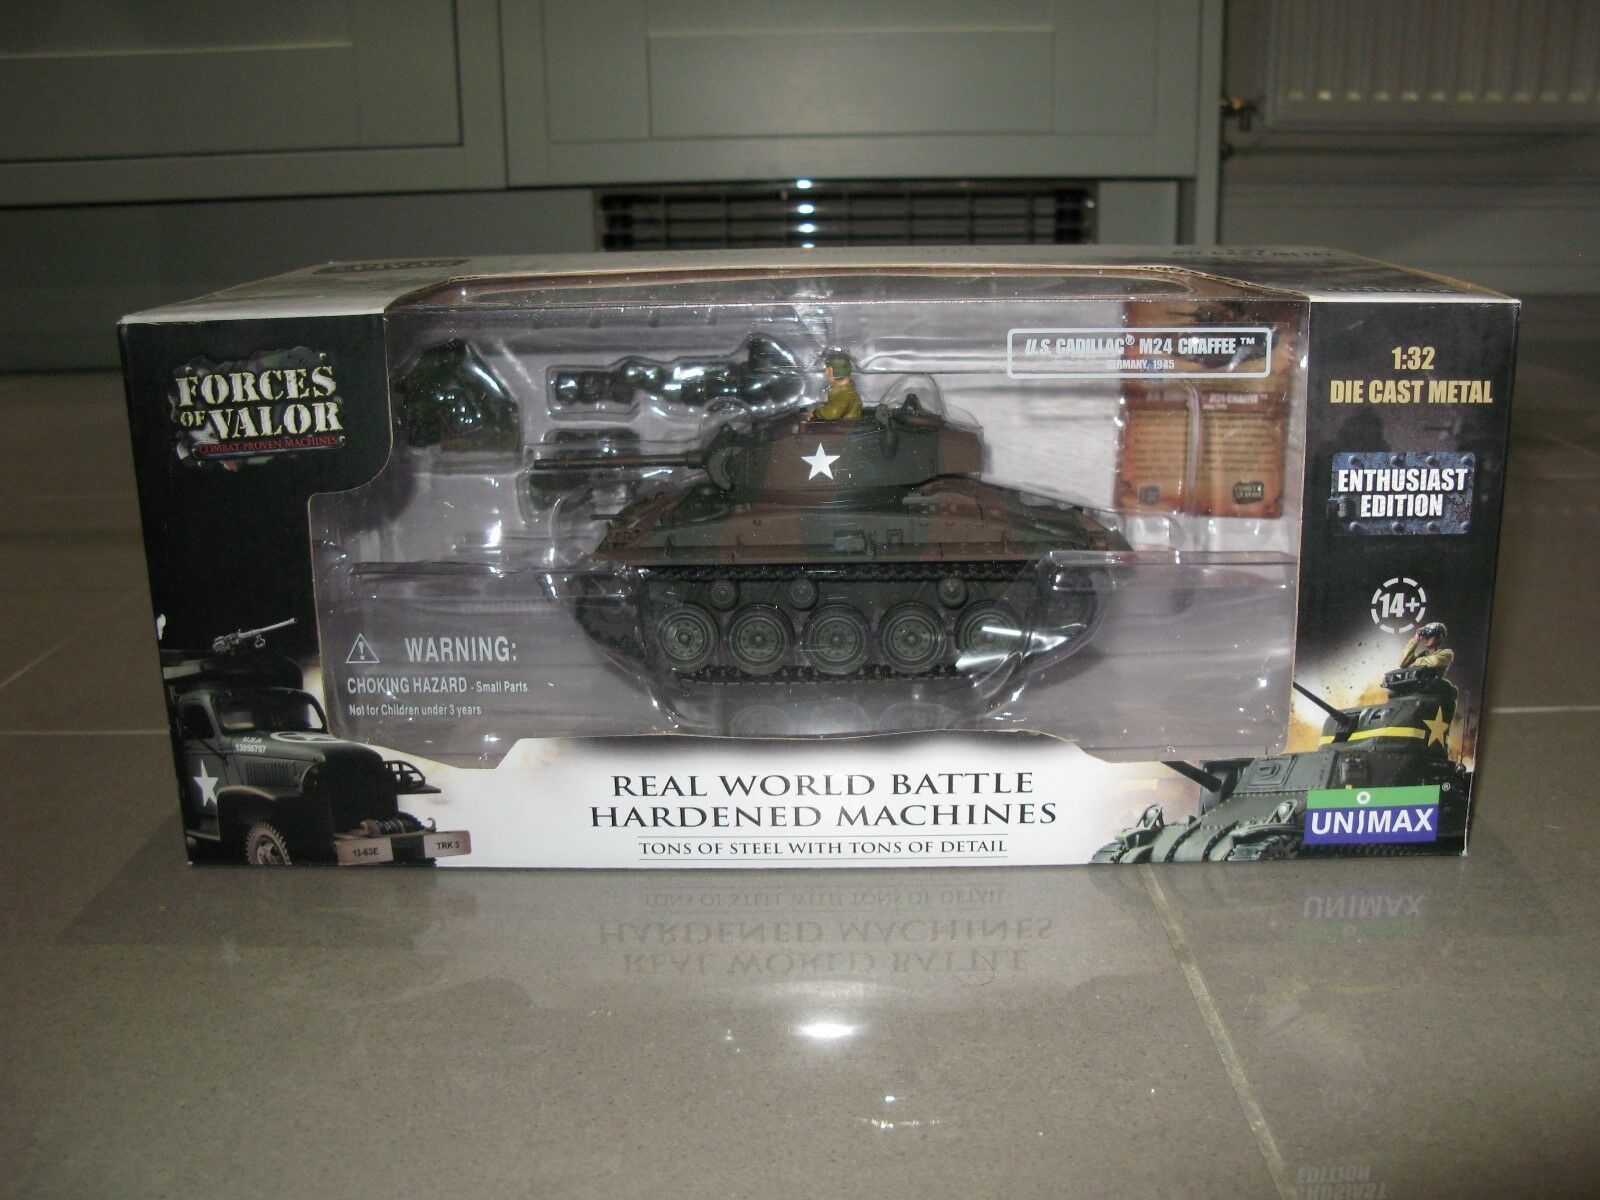 Forces OF VALOR 1 32 80075 US CADILLAC M24 CHAFFE Germania 1945